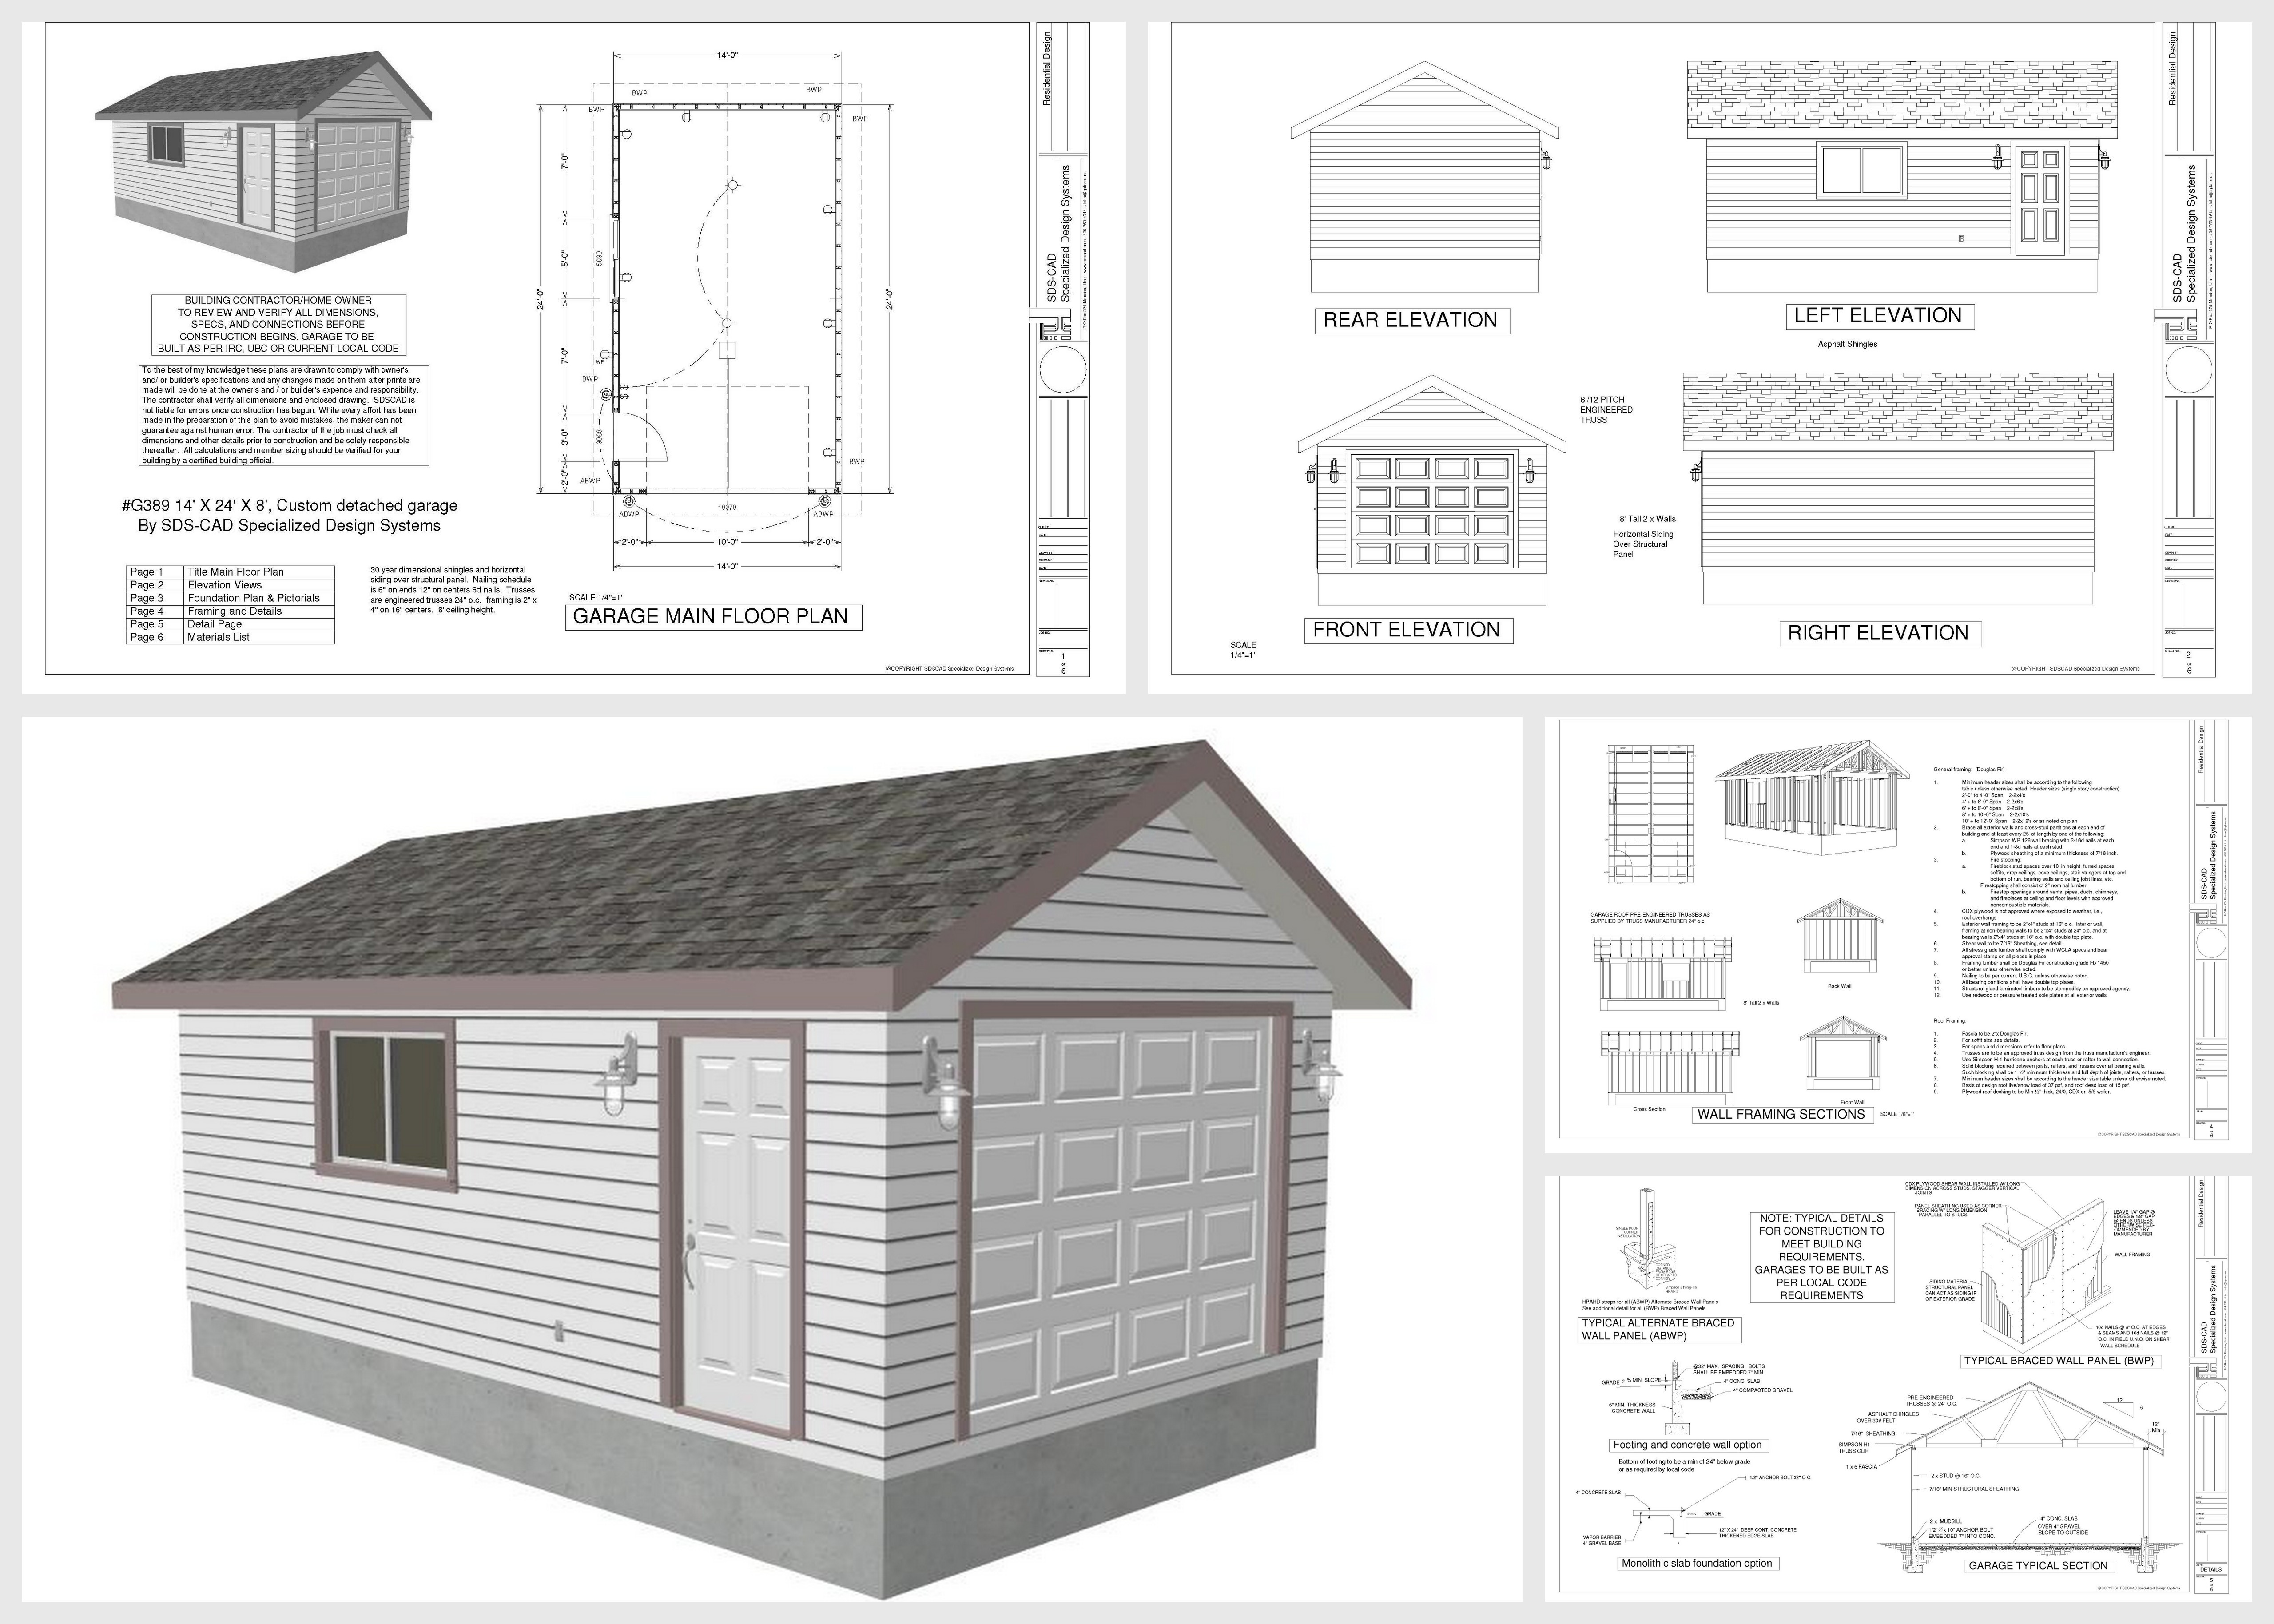 14 x 24 x 8 garage plans with pdf and dwg rv garage plans for Garage plans free download